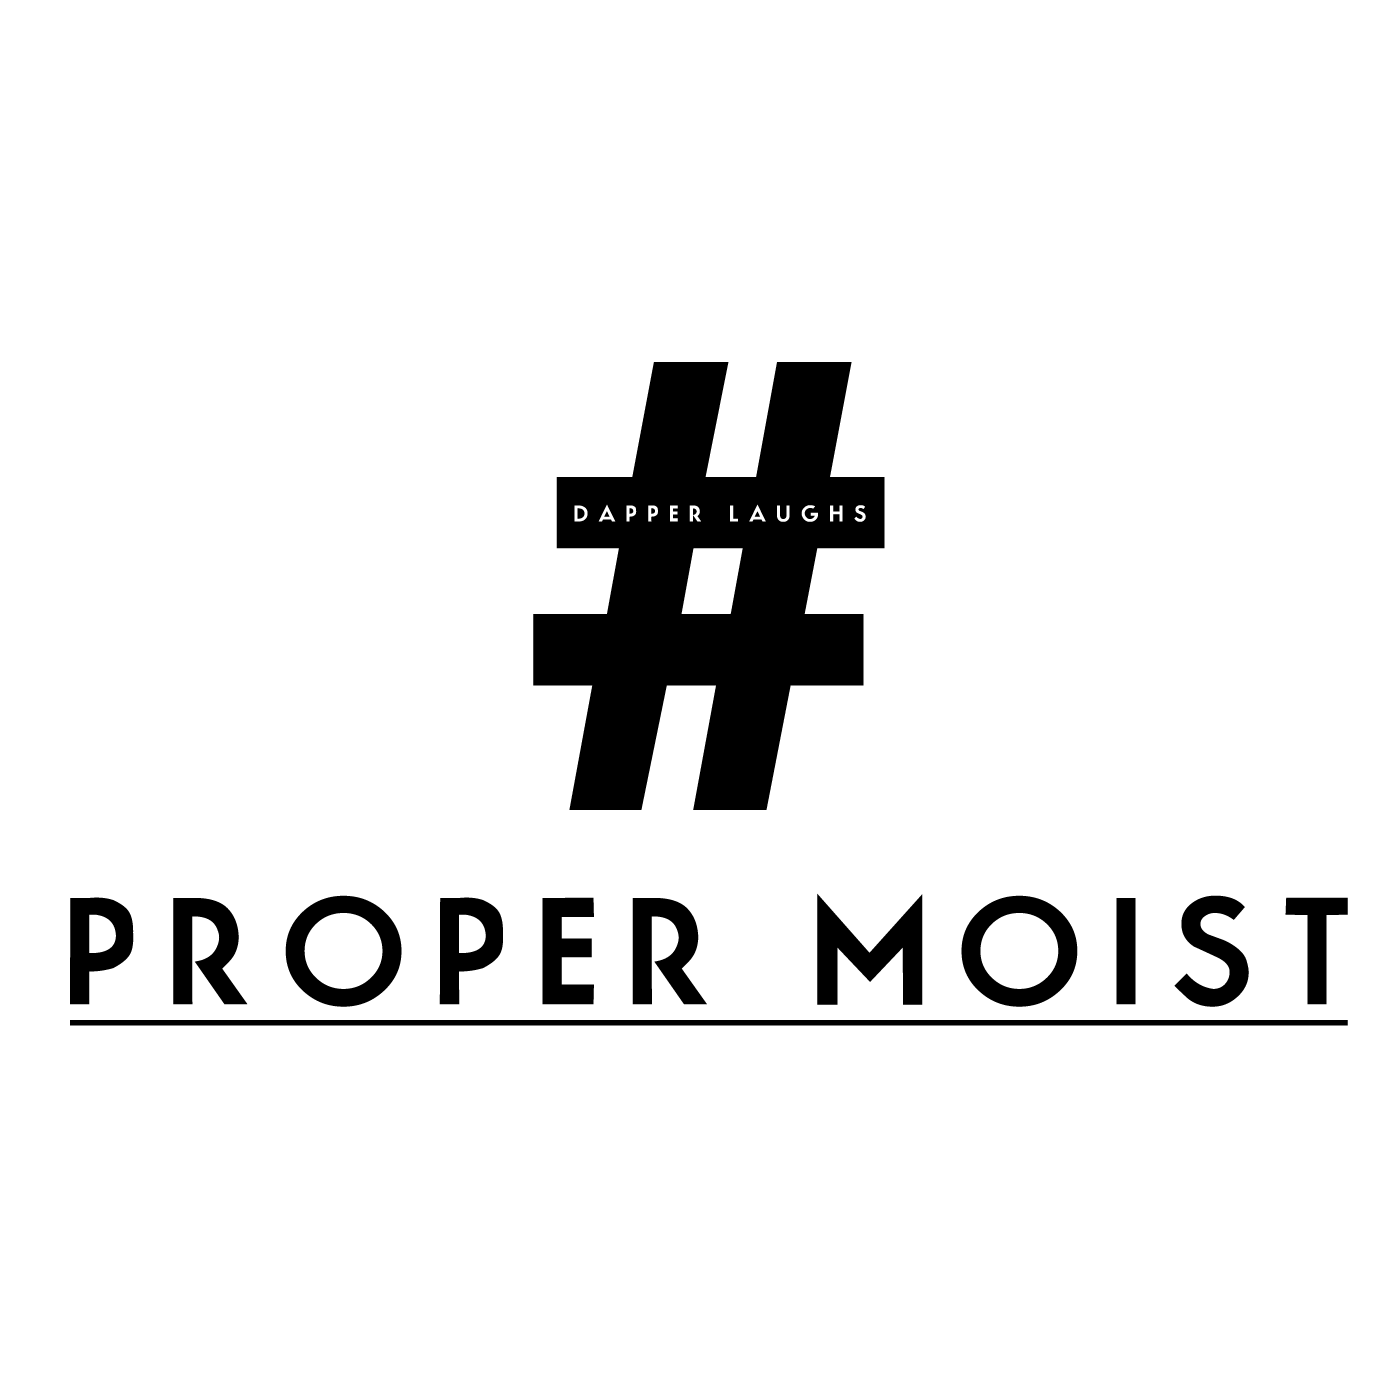 Dapper Laughs - 'Proper Moist'